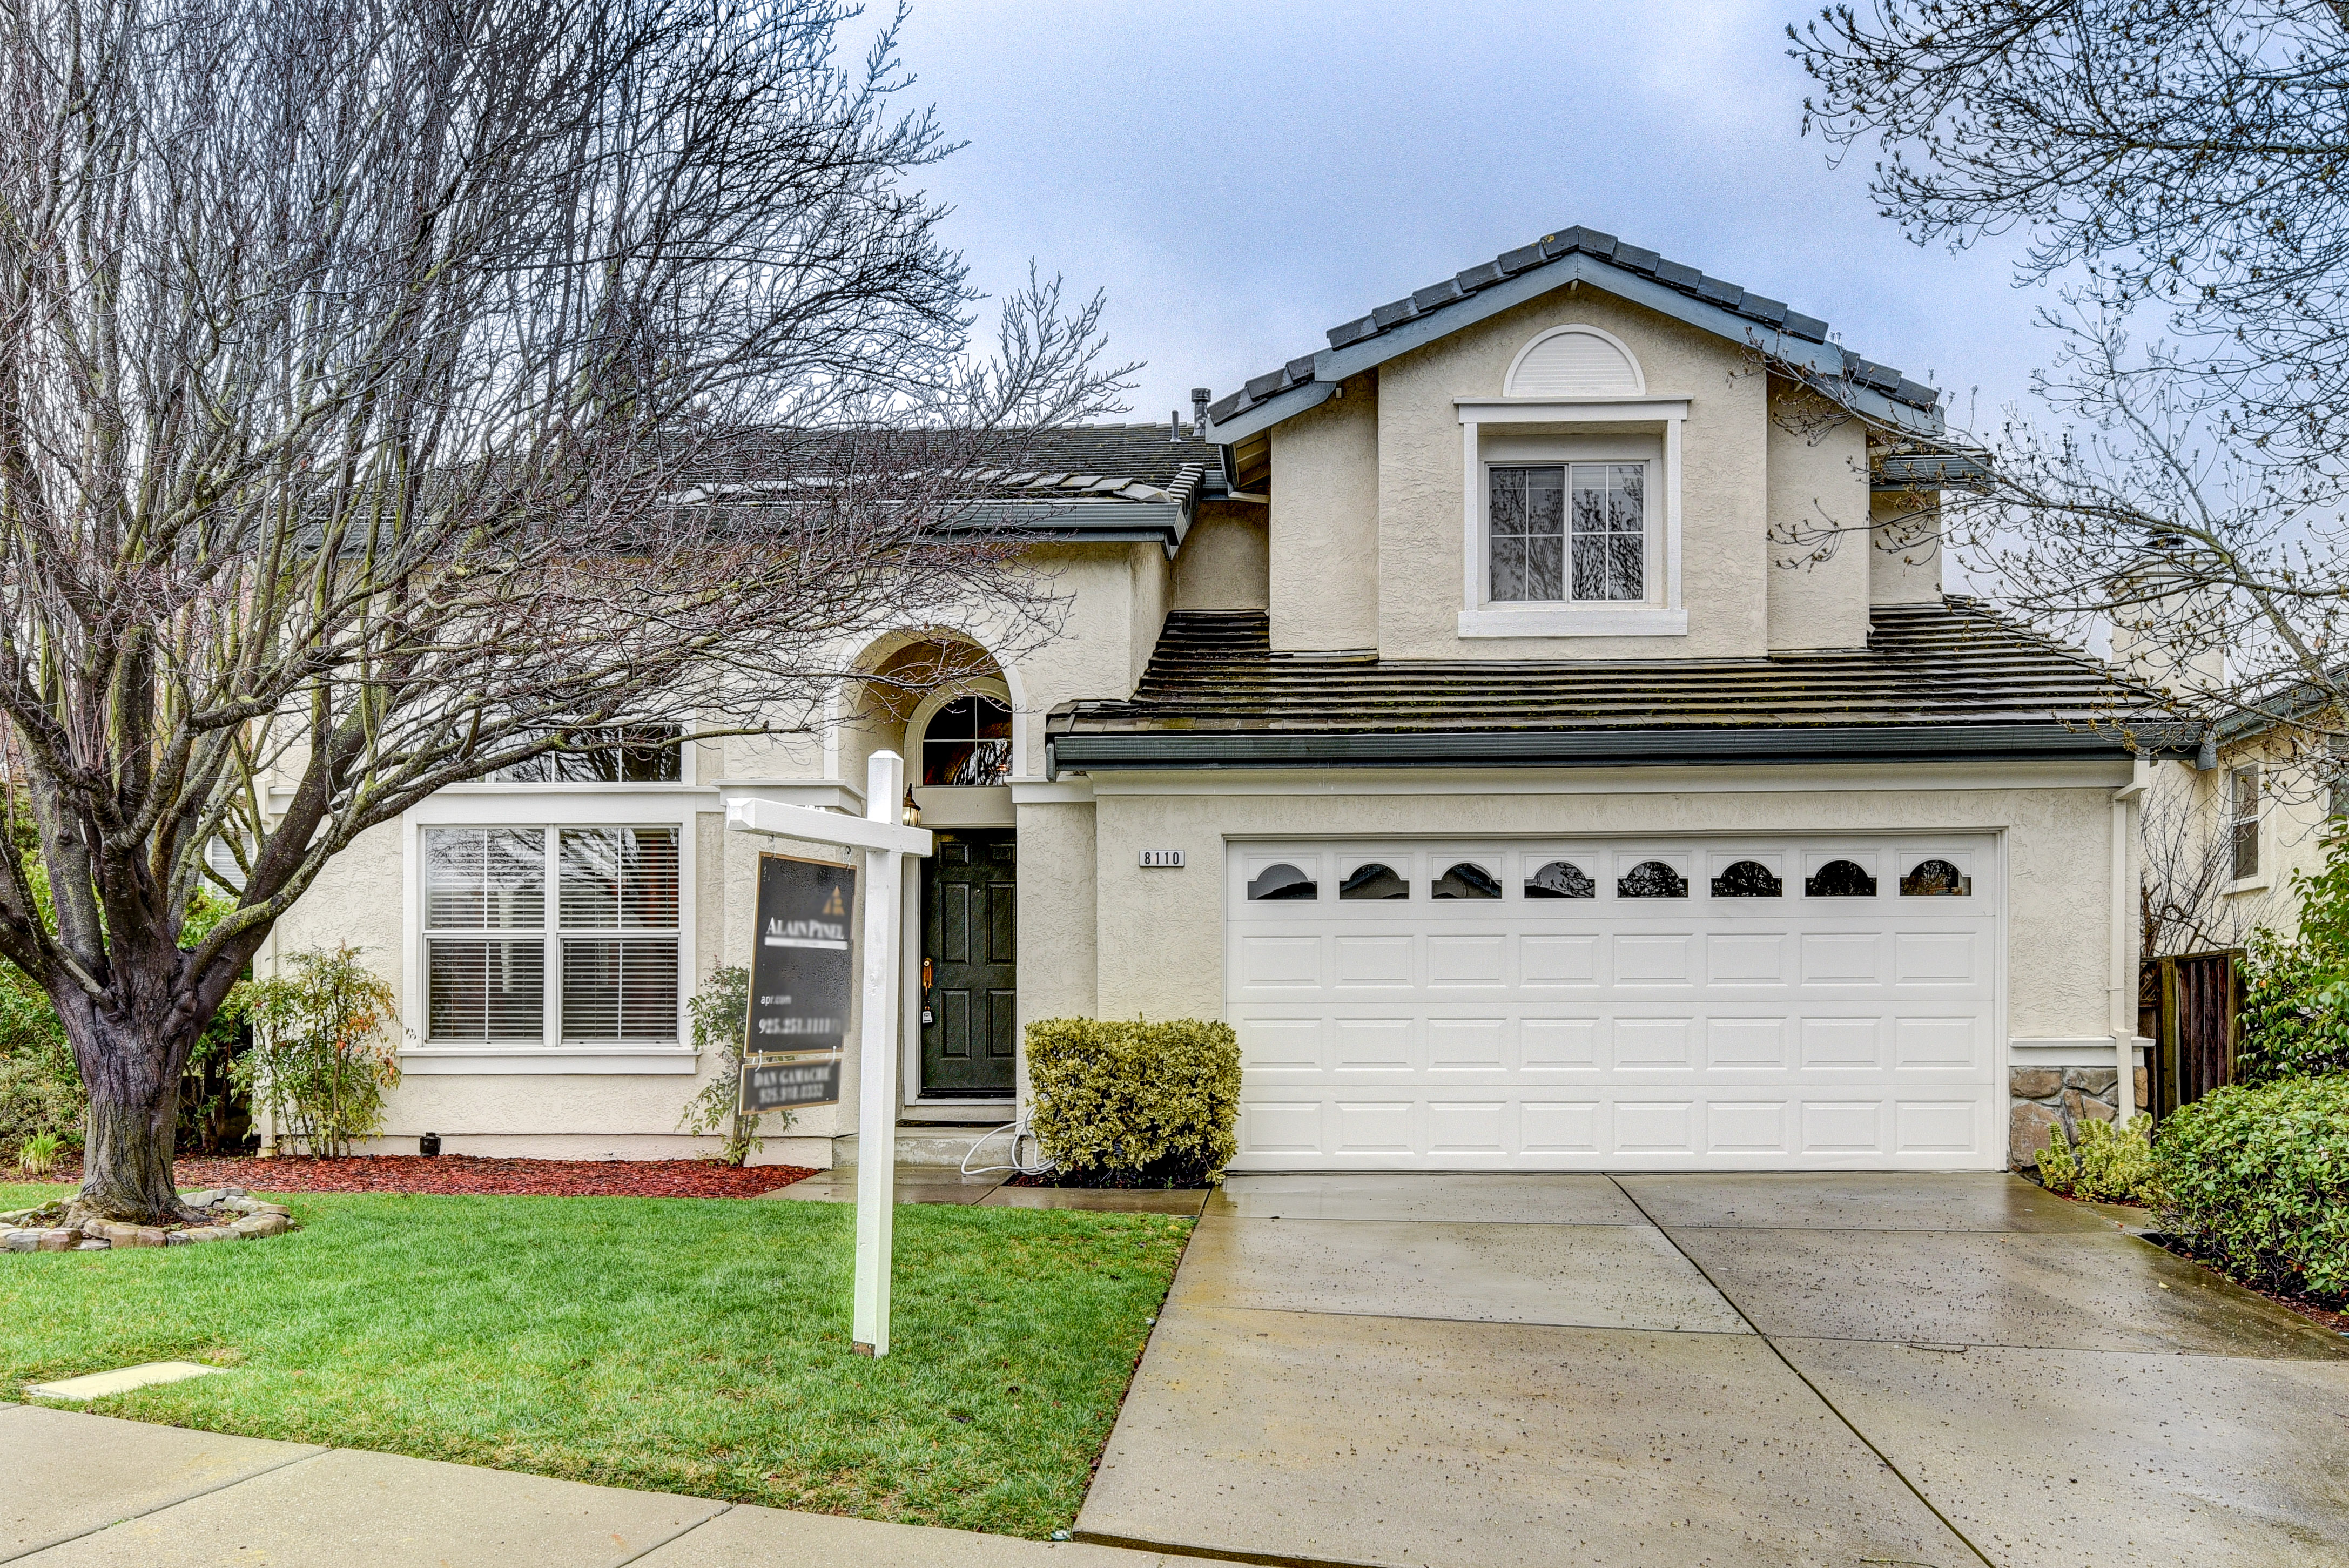 8110_Canyon_Creek_Cir_Pleasanton-001